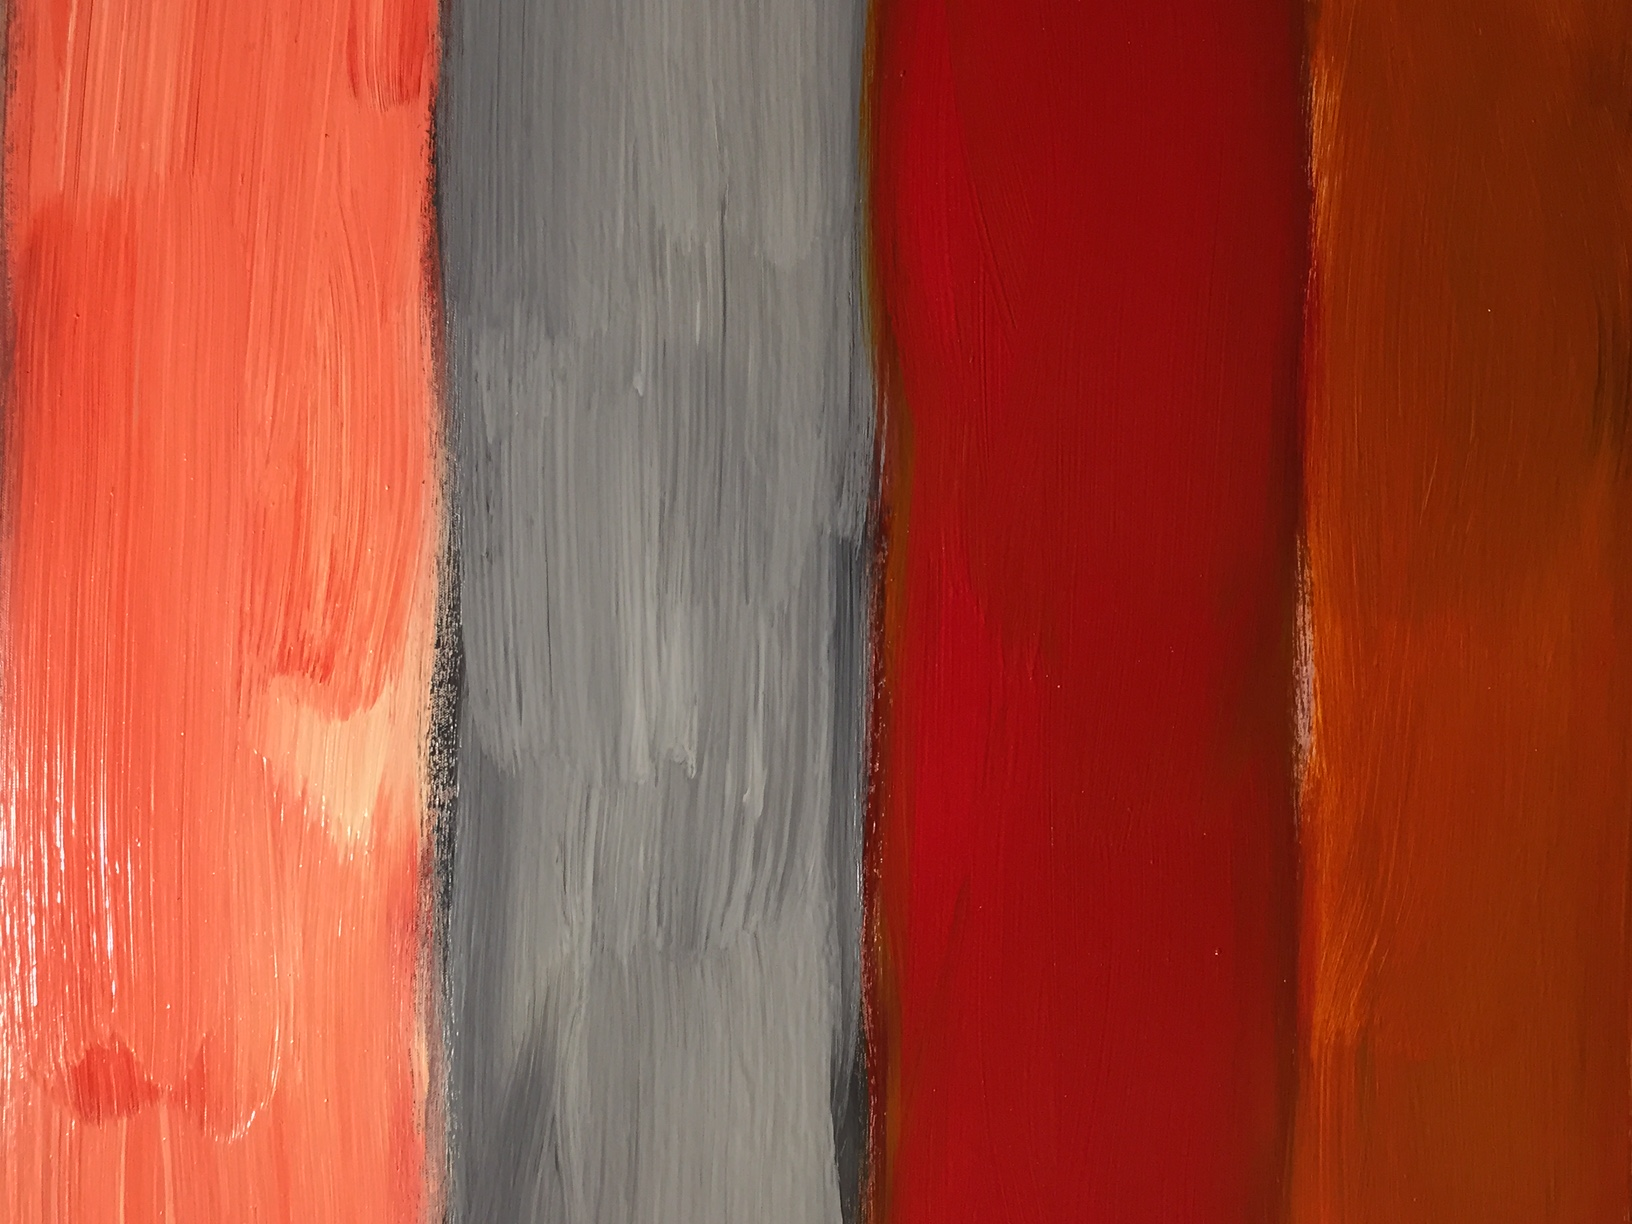 Sean Scully's Land Sea | The Roger Thomas Collection